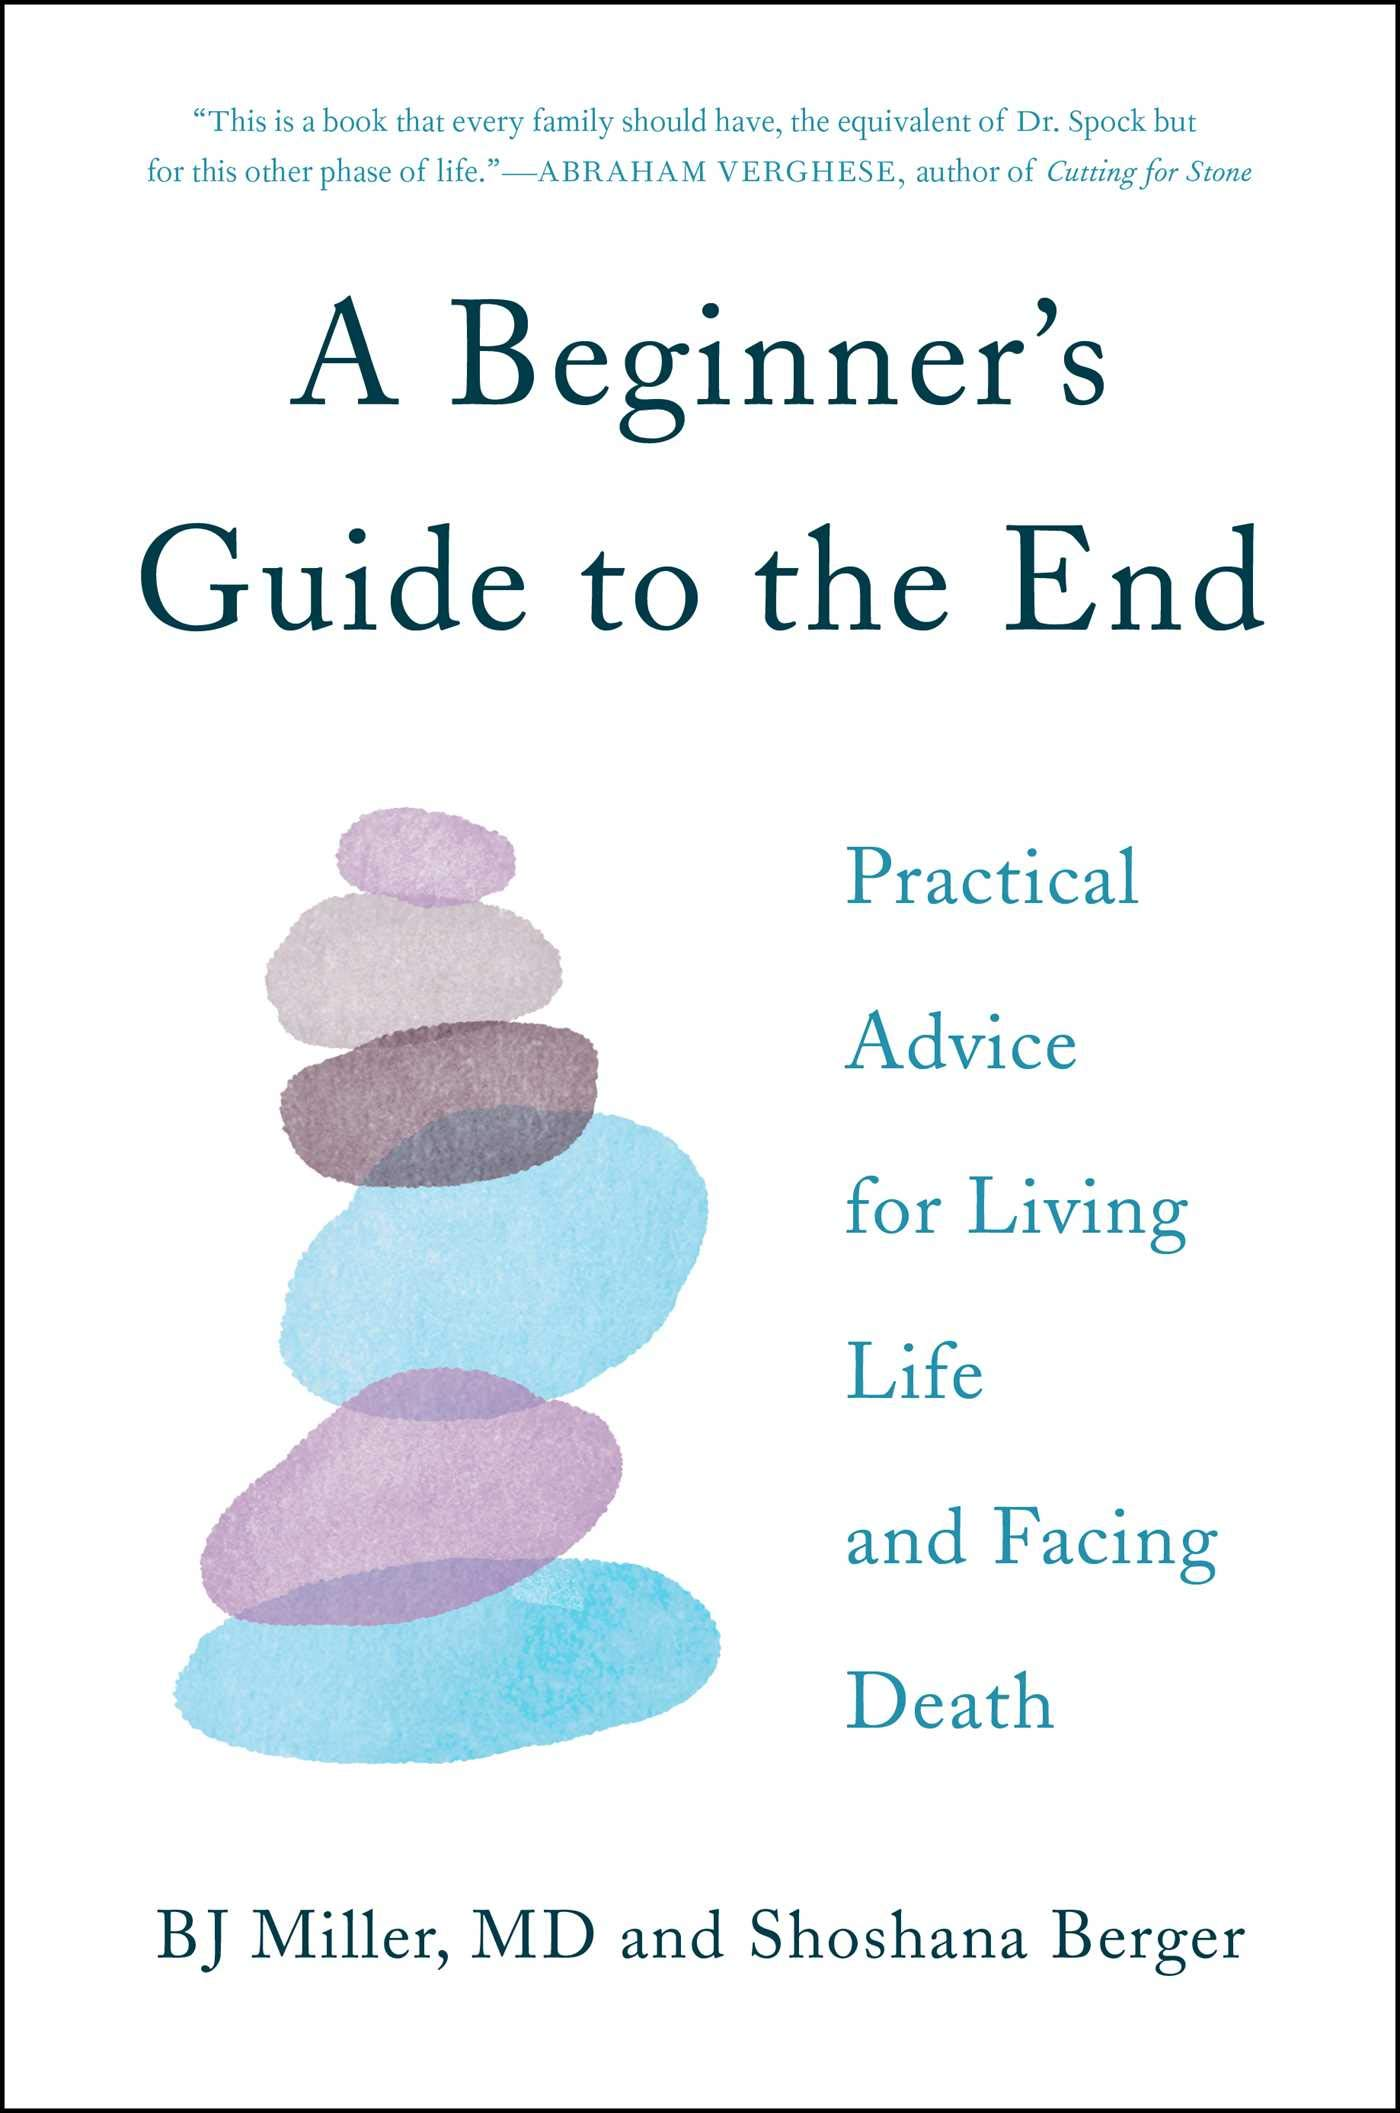 A Beginner's Guide to the End: Practical Advice for Living Life and Facing Death by Simon & Schuster